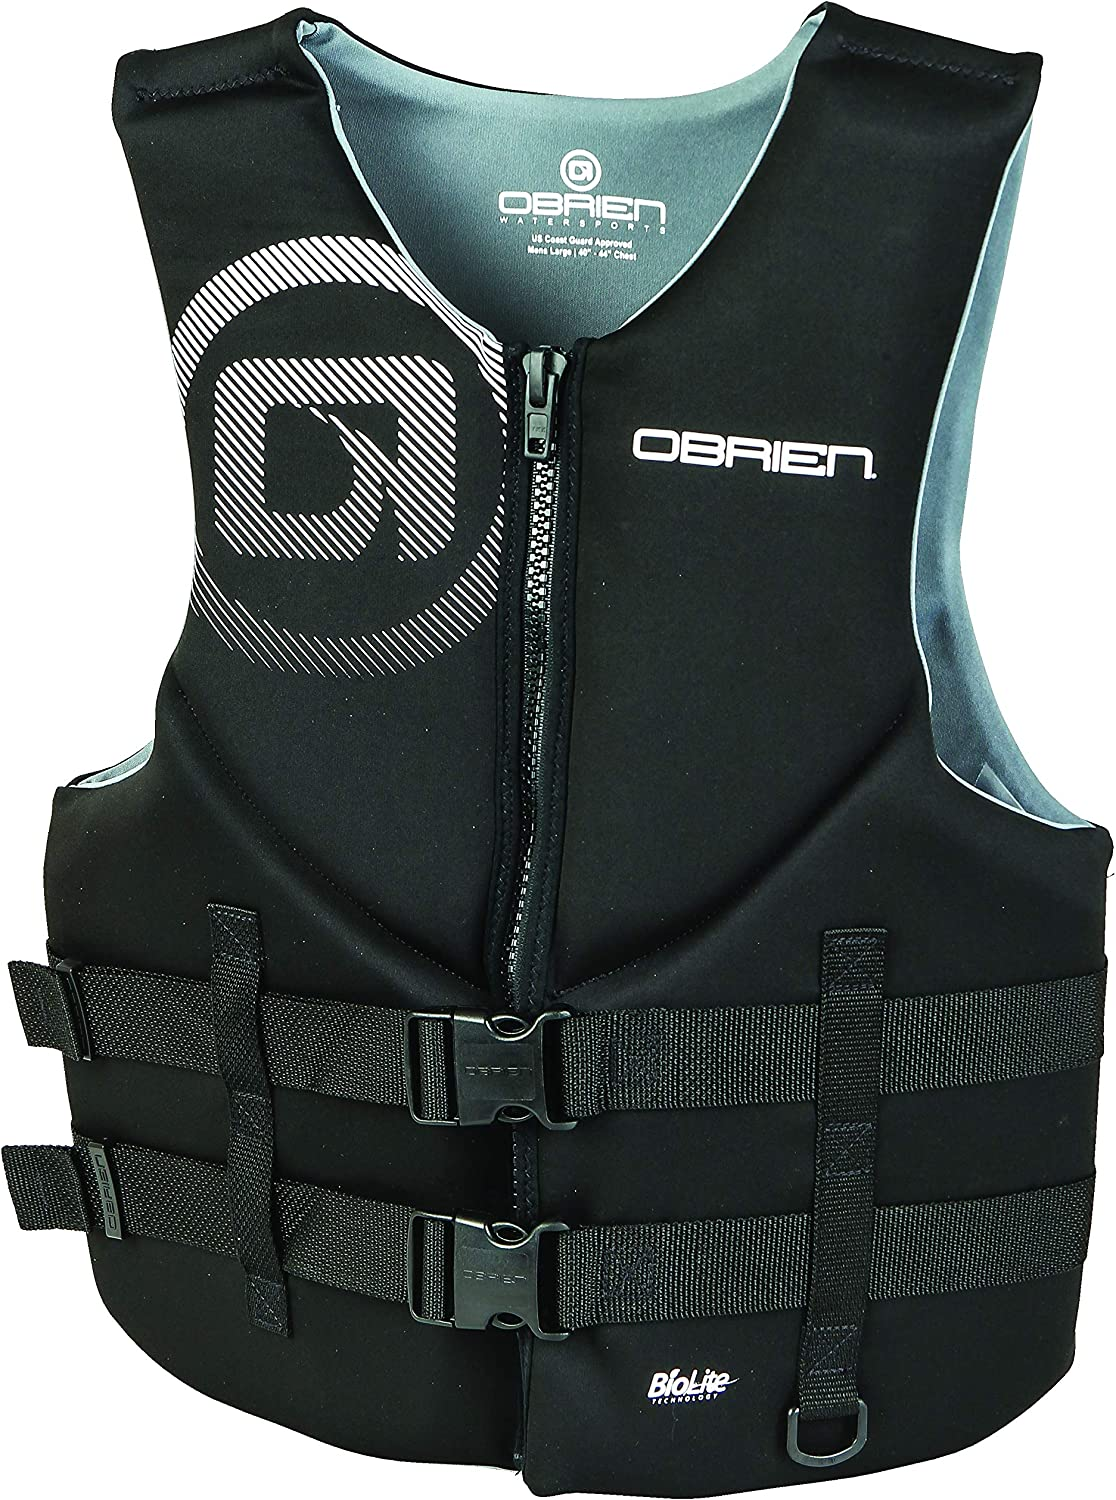 O'Brien Max 59% OFF Mens Traditional Jacket Neoprene Life Fixed price for sale